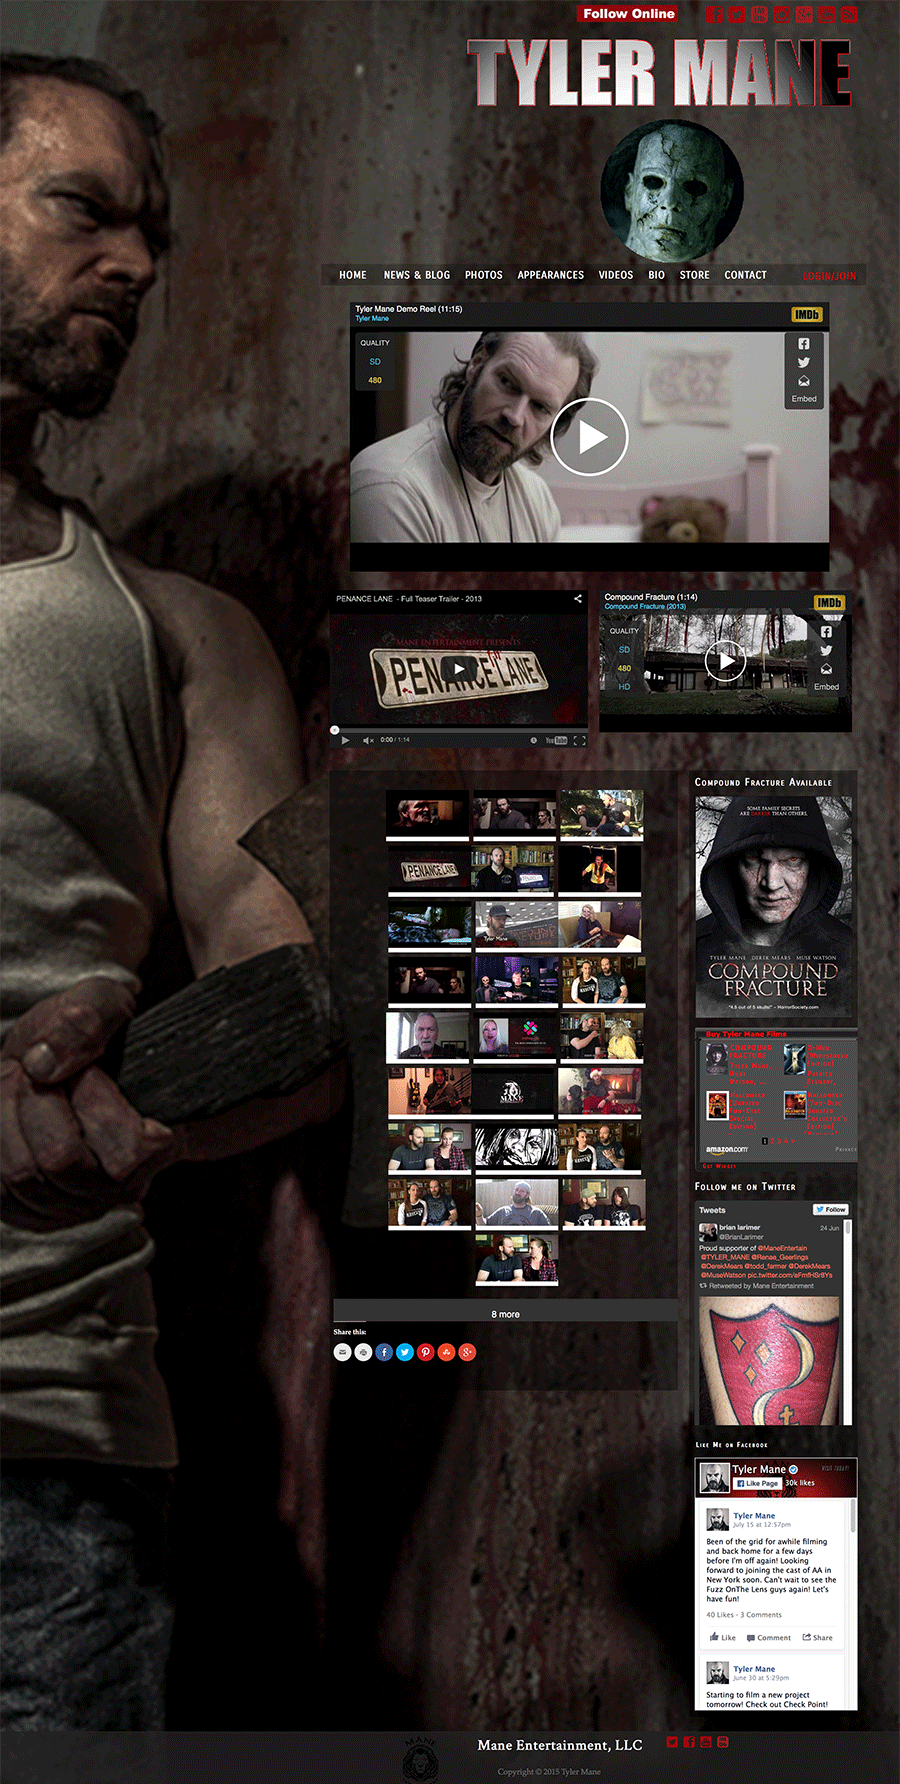 Tyler Mane video page